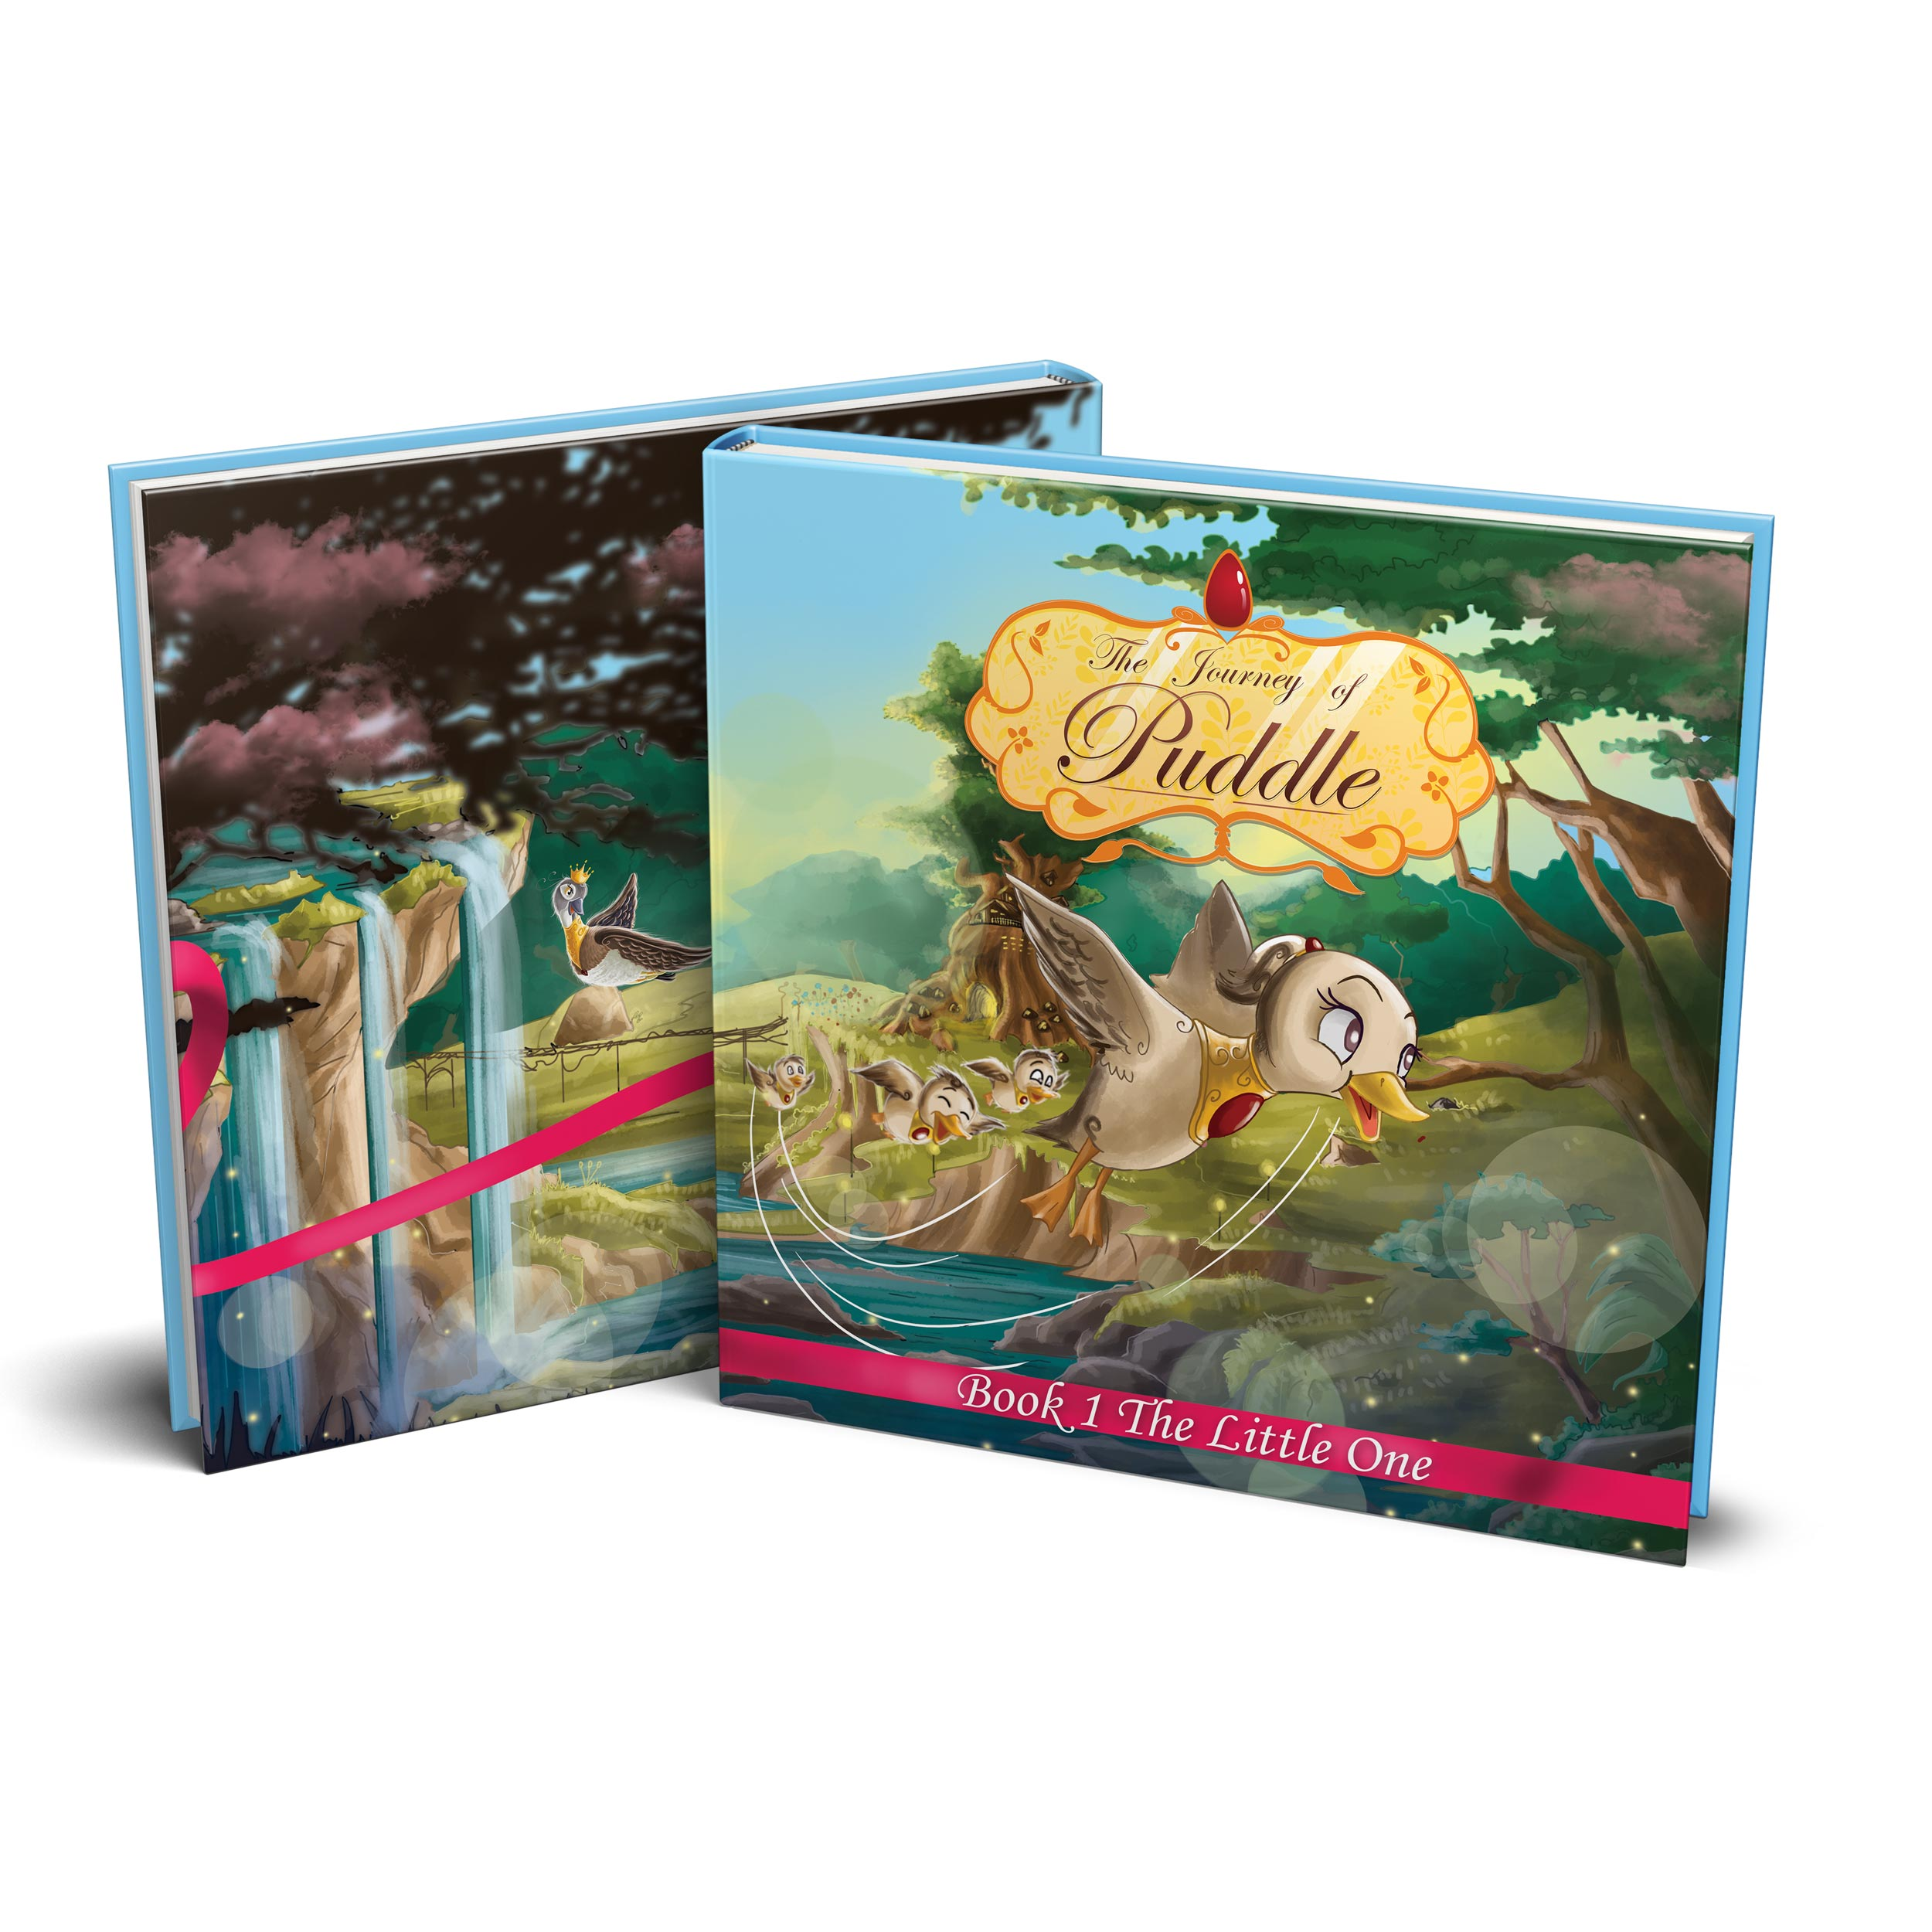 journey-of-puddle-christian-illustrated-children-books-book-1-buy-now.jpg